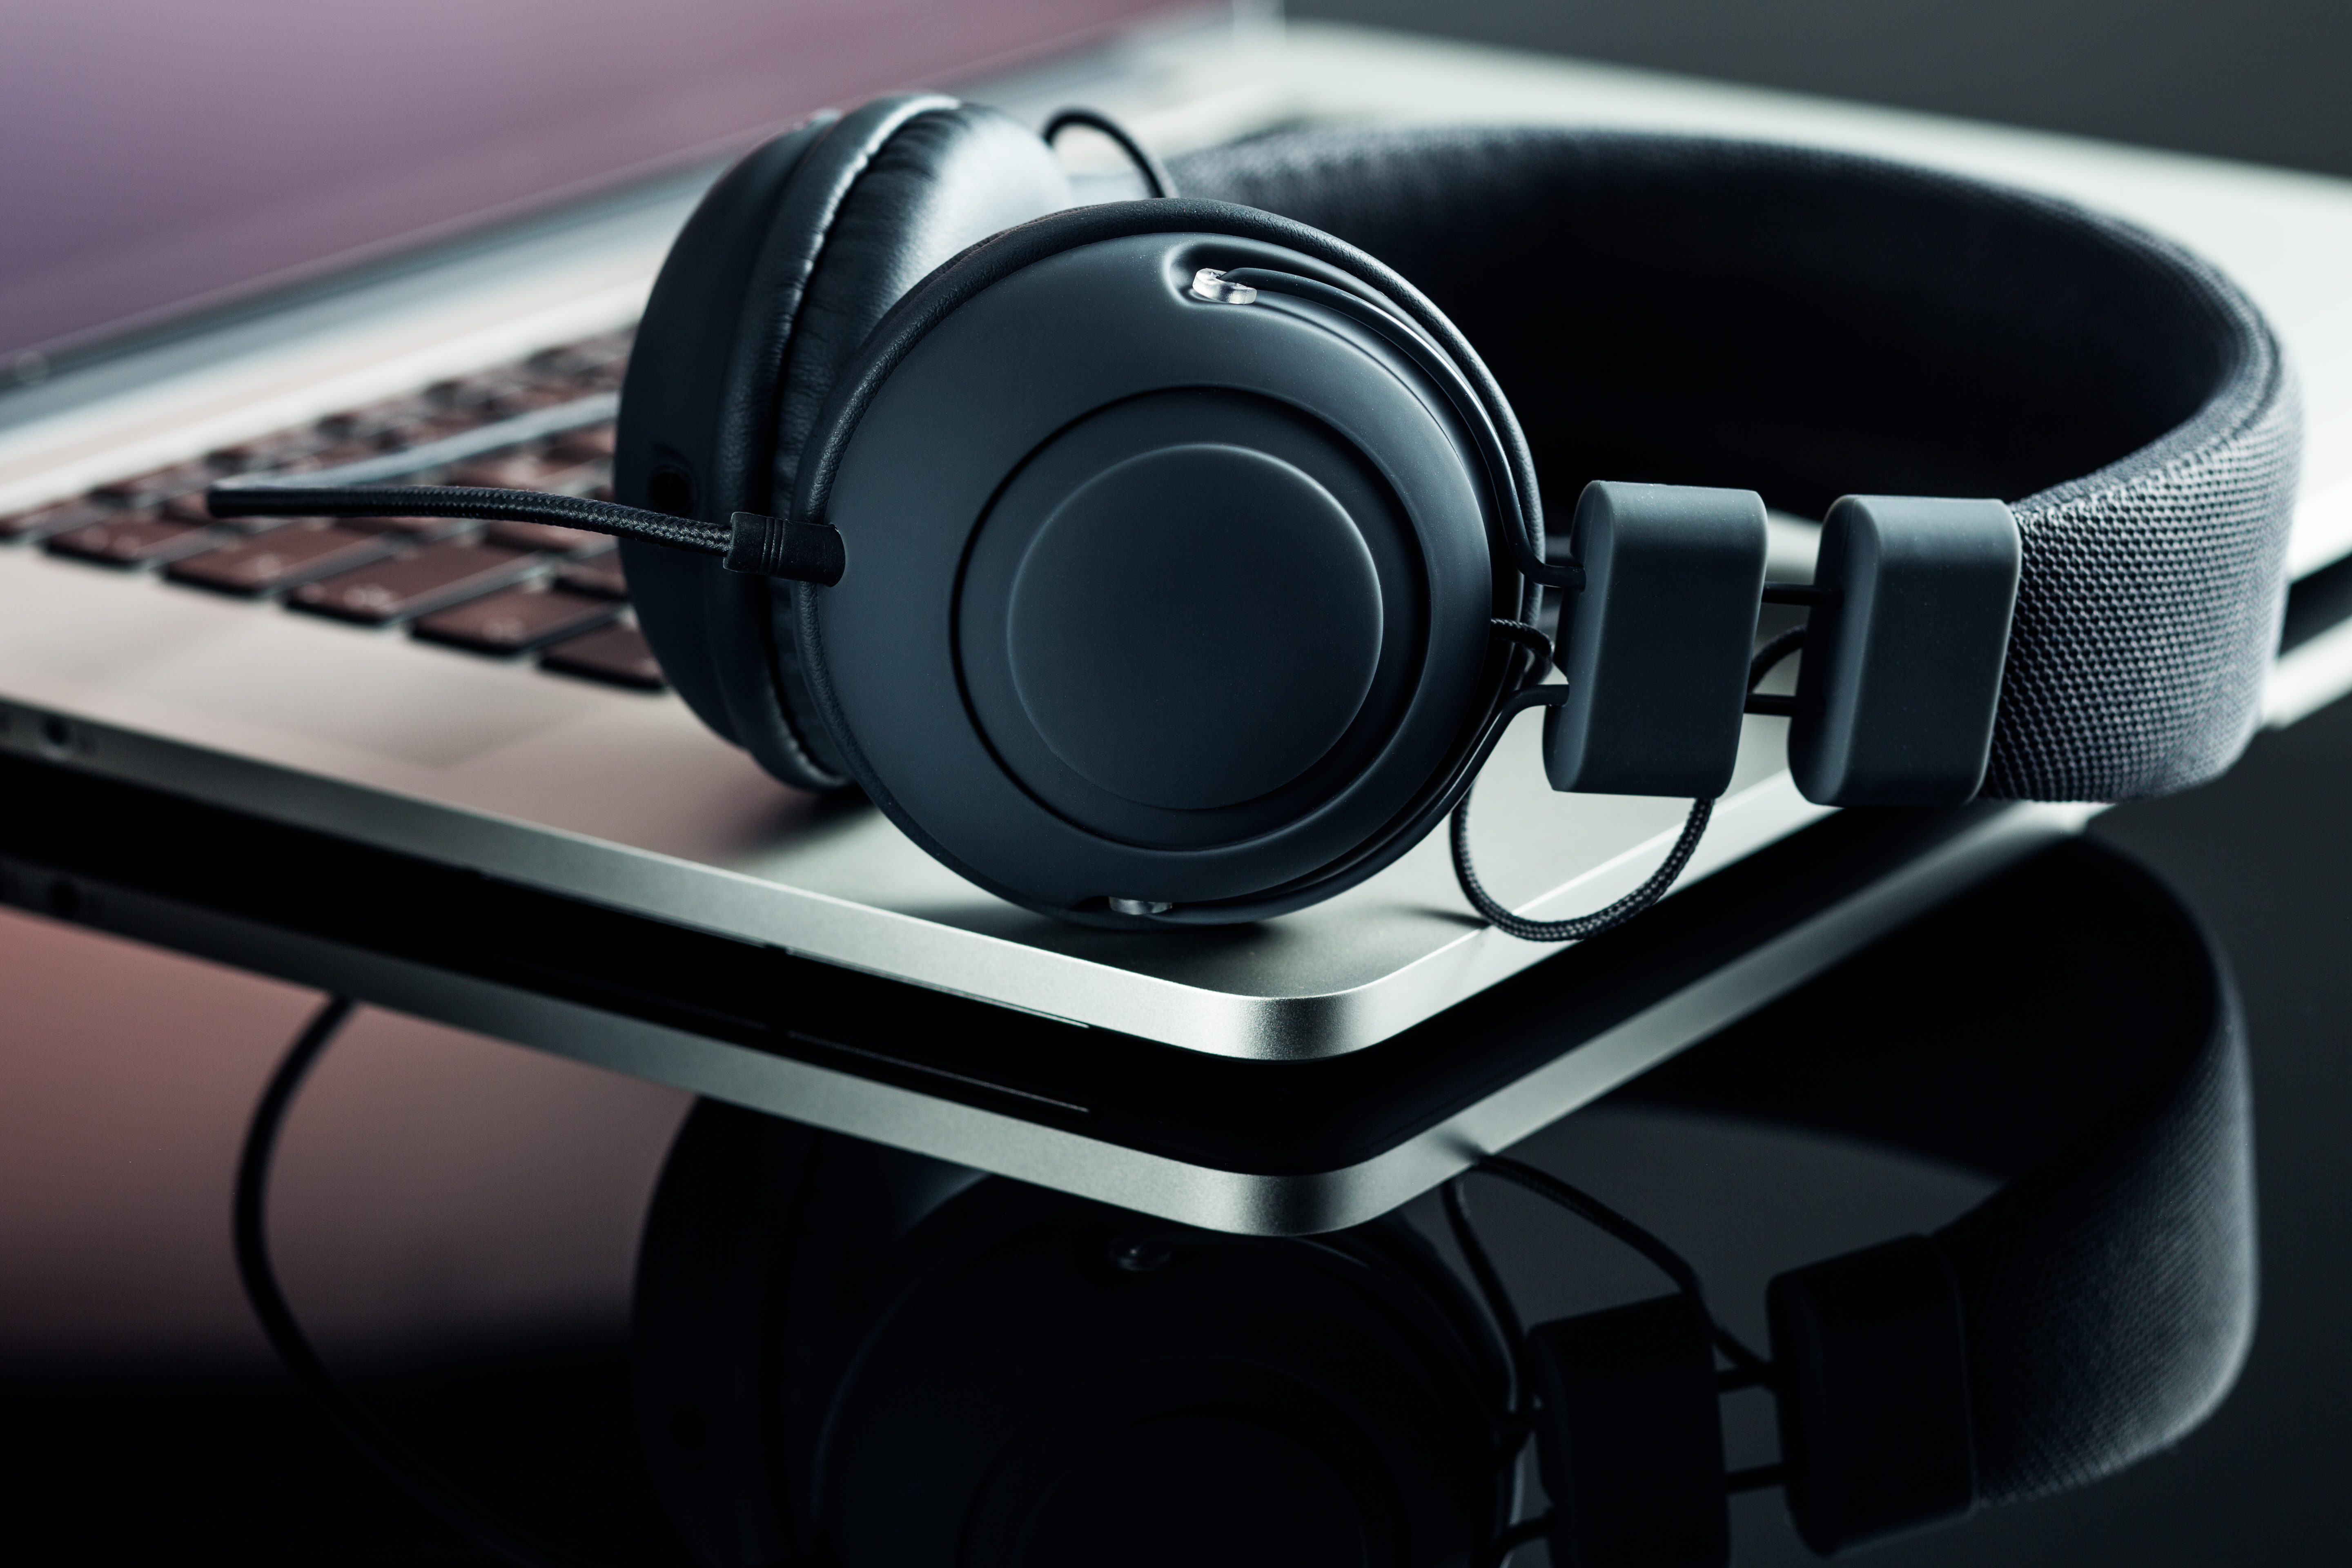 headphones-and-laptop-PDSZAY4